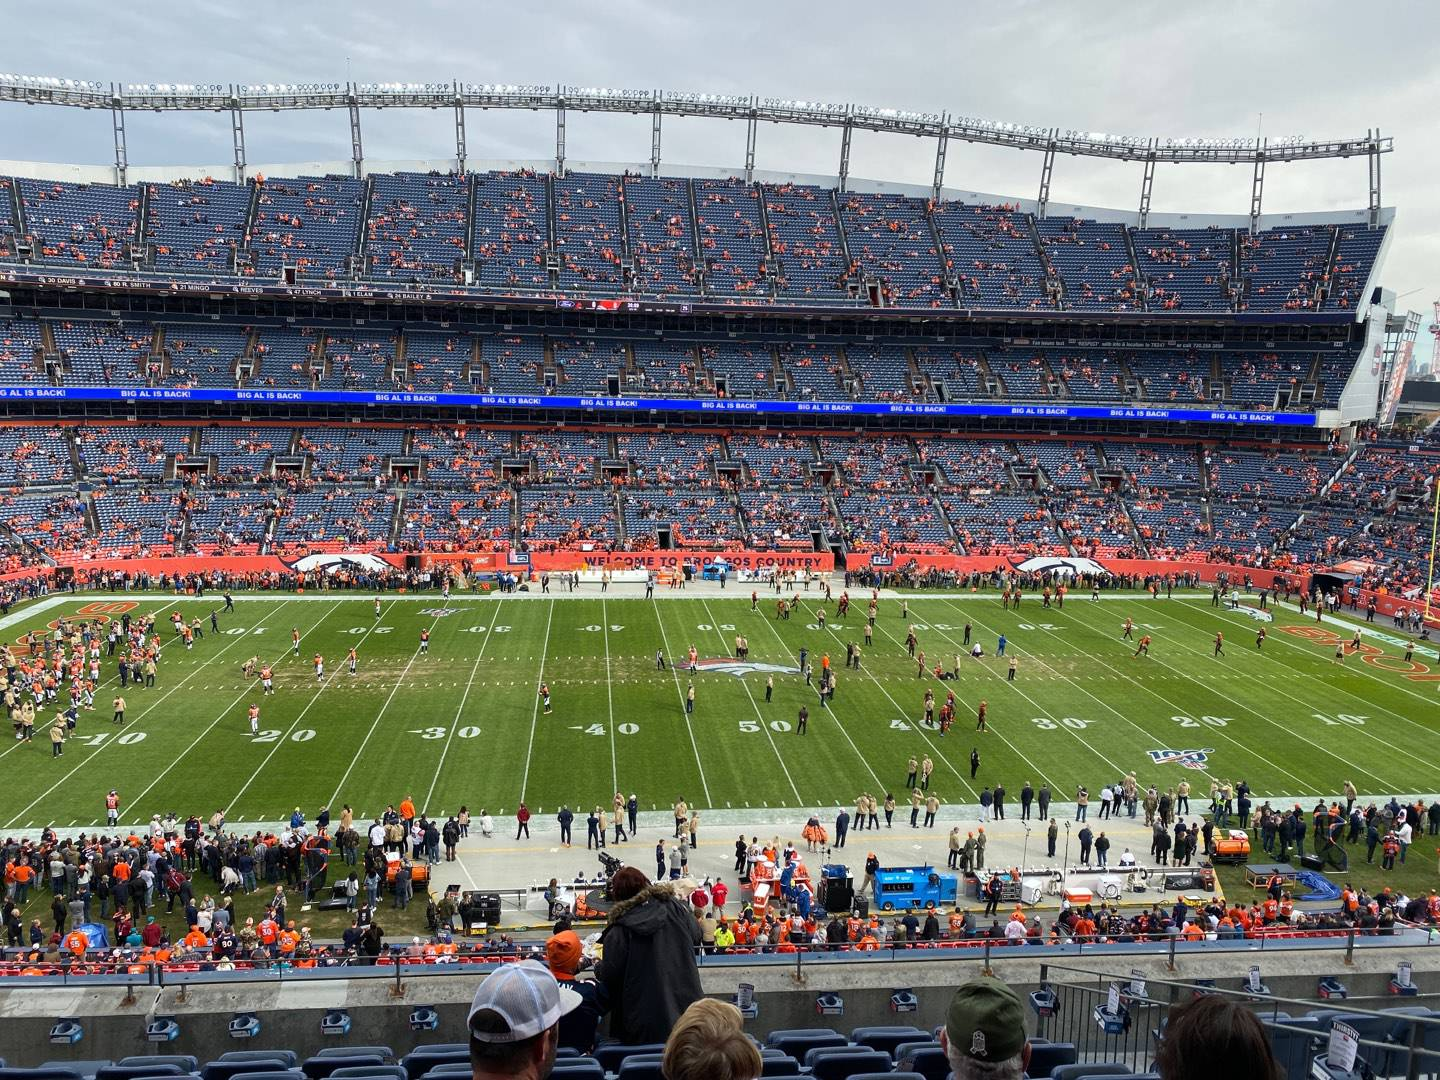 Empower Field at Mile High Stadium Section 310 Row 9 Seat 9